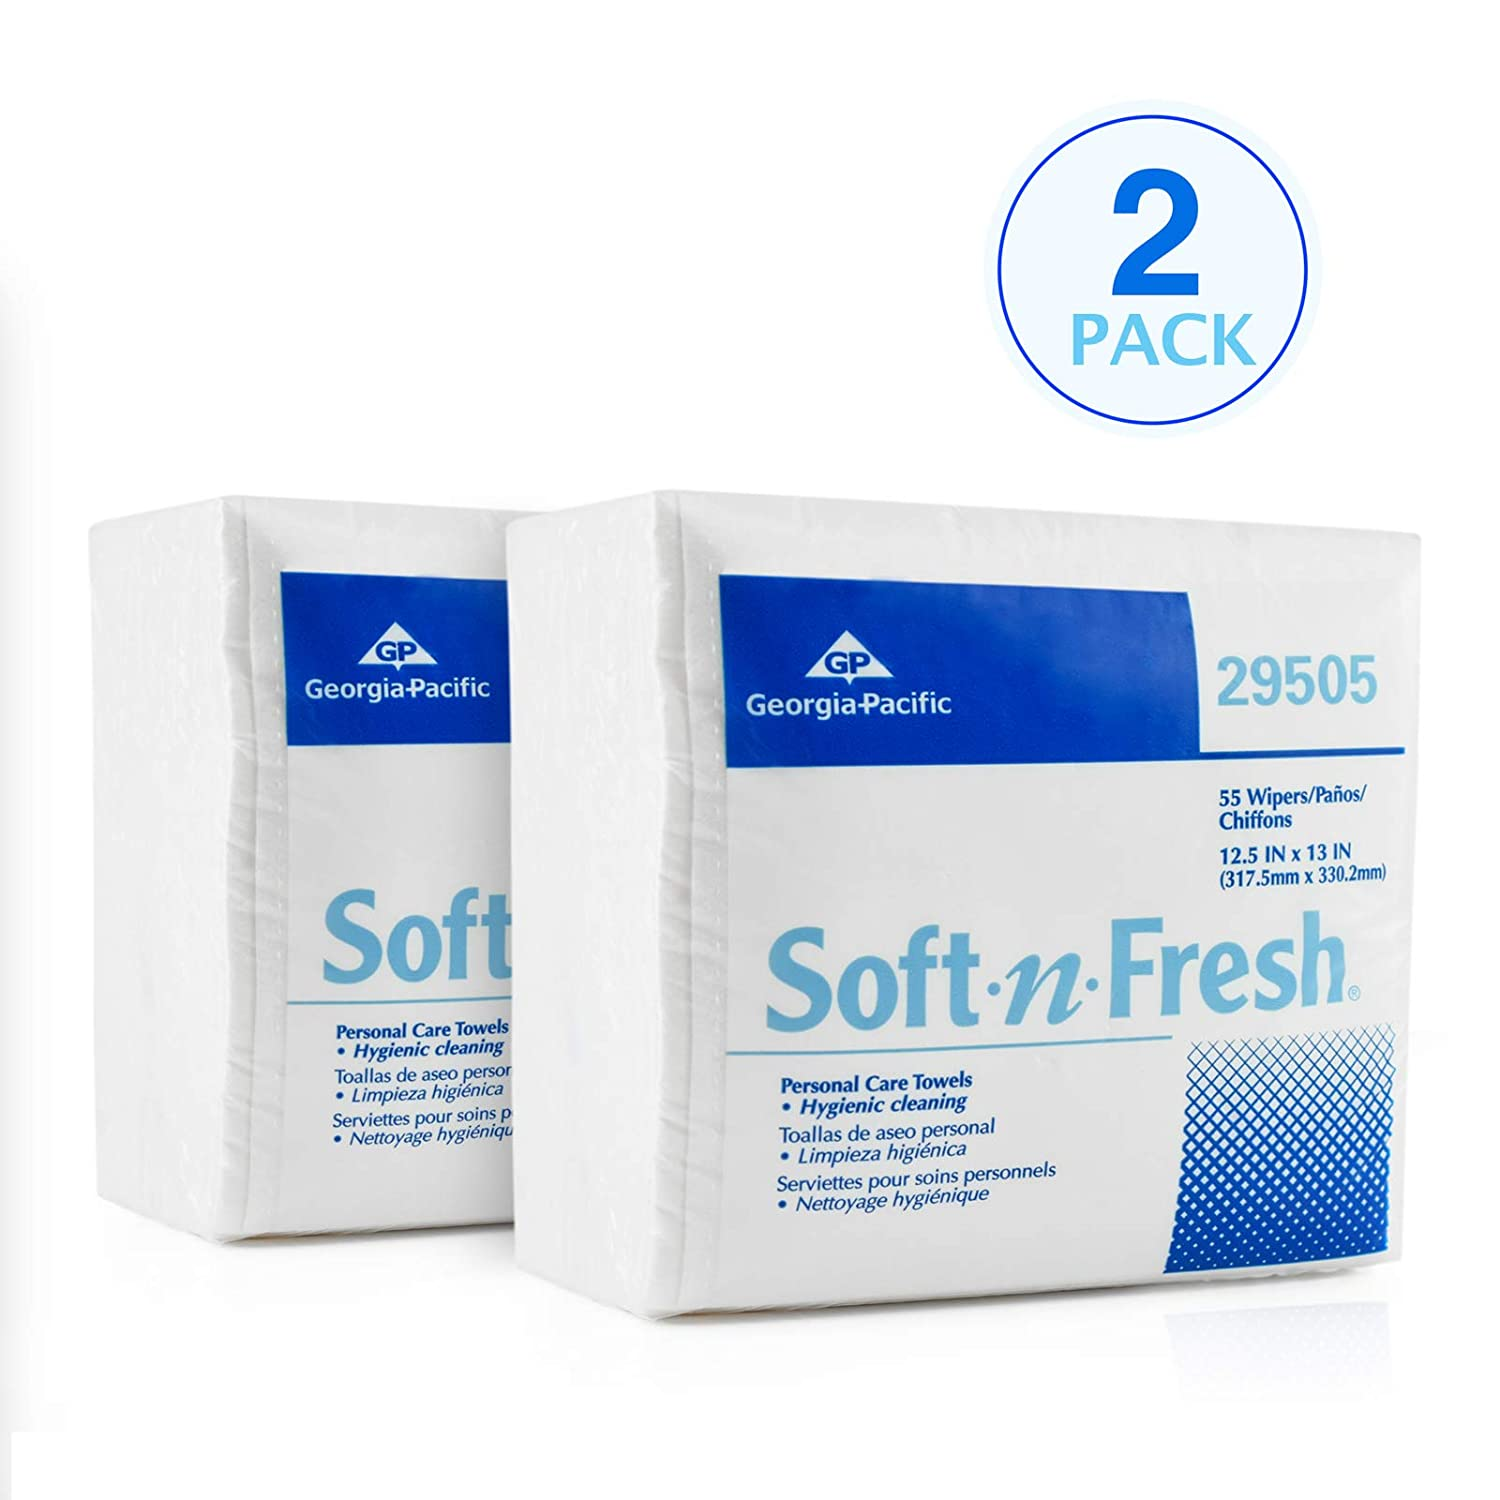 Georgia Pacific 29505 Soft-n-Fresh Personal Care Disposable Wash Cloths | Safe for Patient Care, Babies, Home Use and Beauty Regimens | 2 PK (55 PER PK)| ...